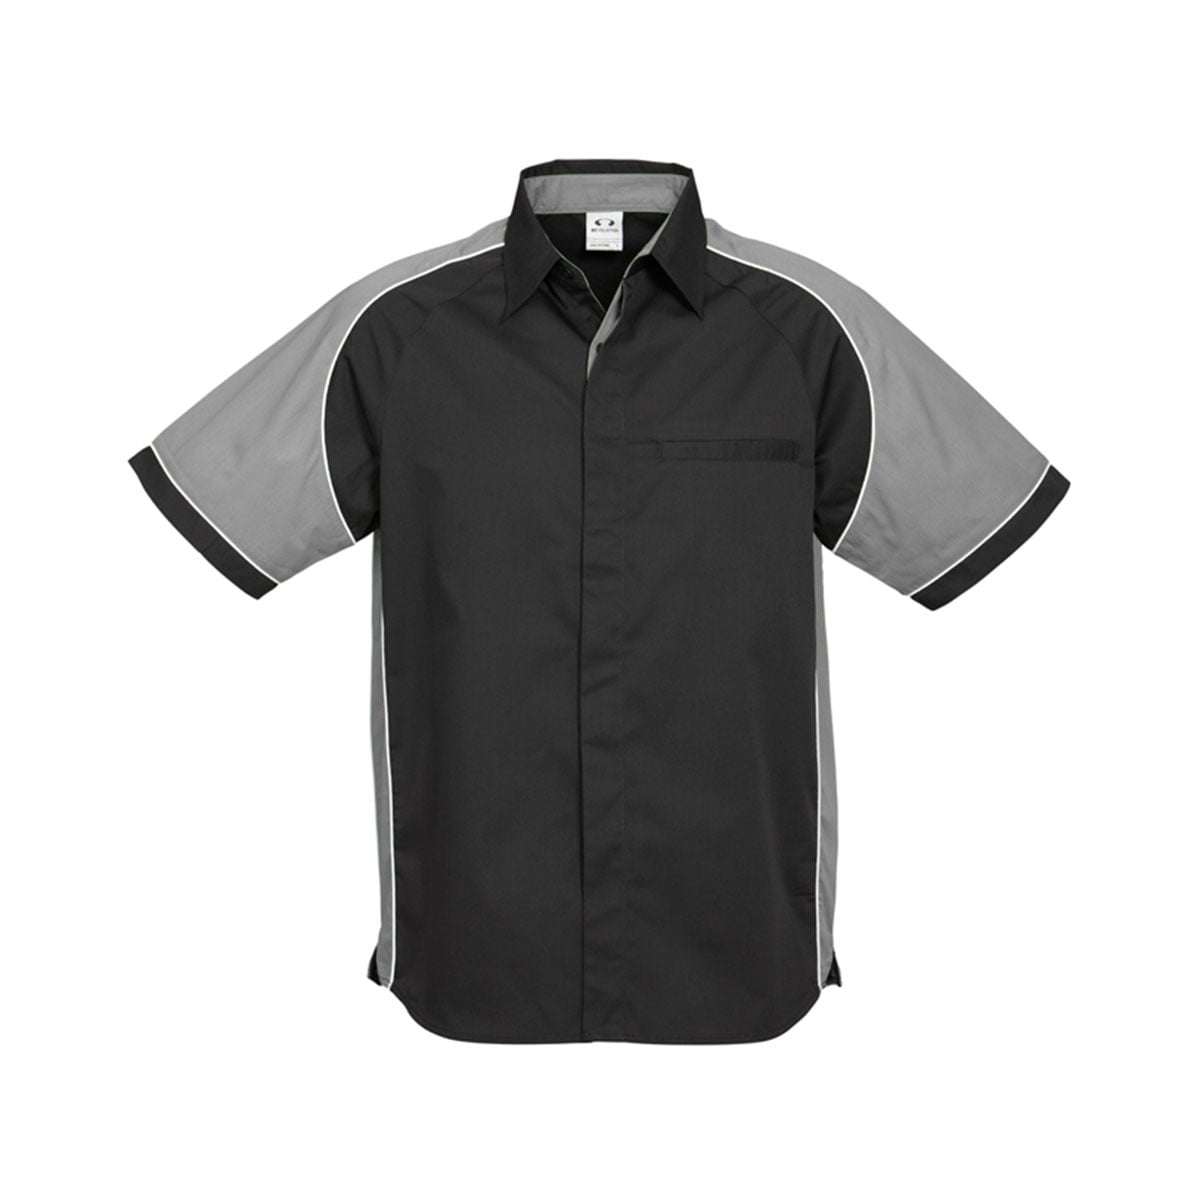 Mens Nitro Shirt-Black / Grey / White